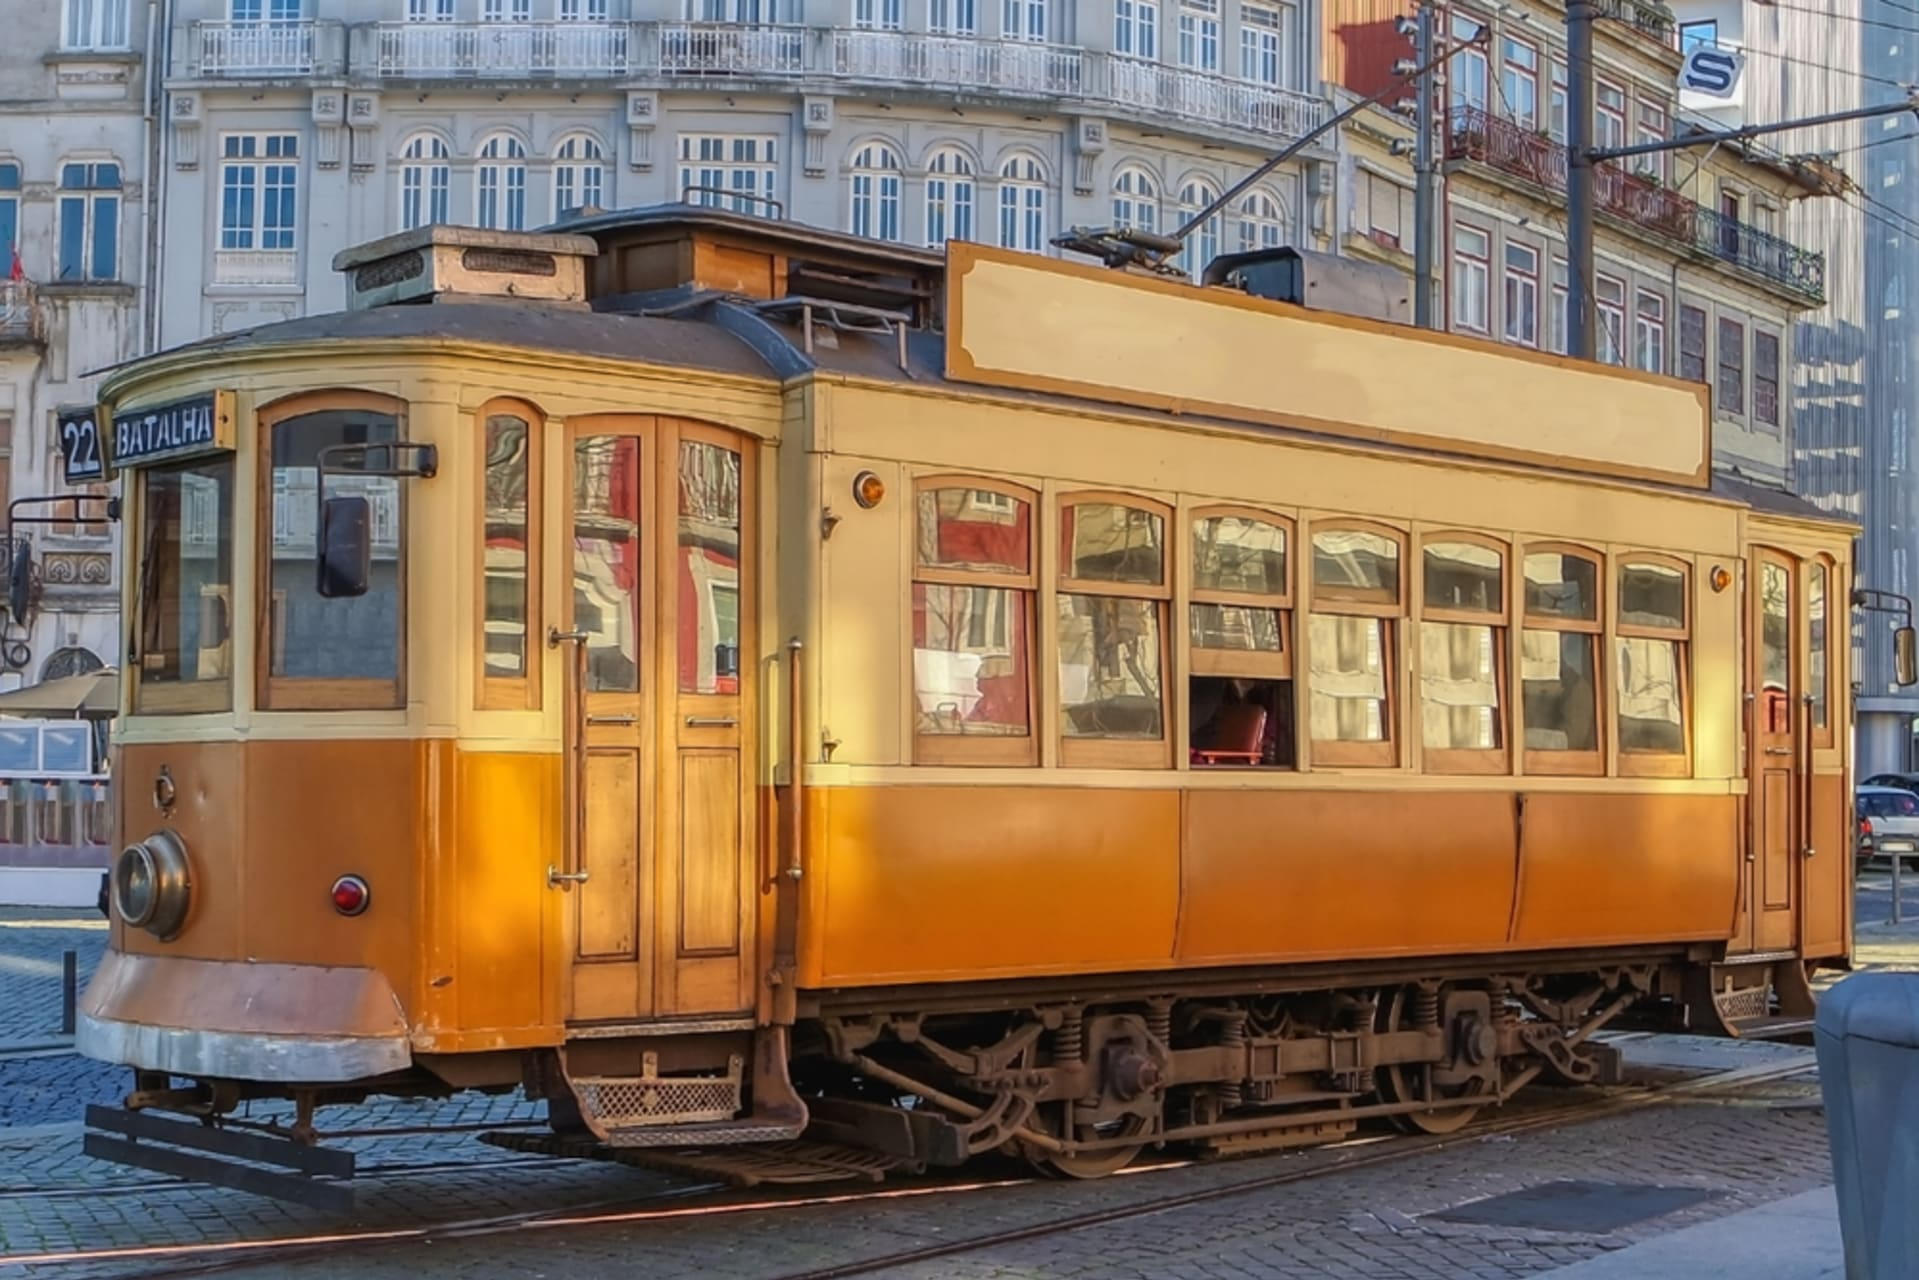 """Porto - On the Tram with Cláudia"""" - Part 2 (Buildings View)"""